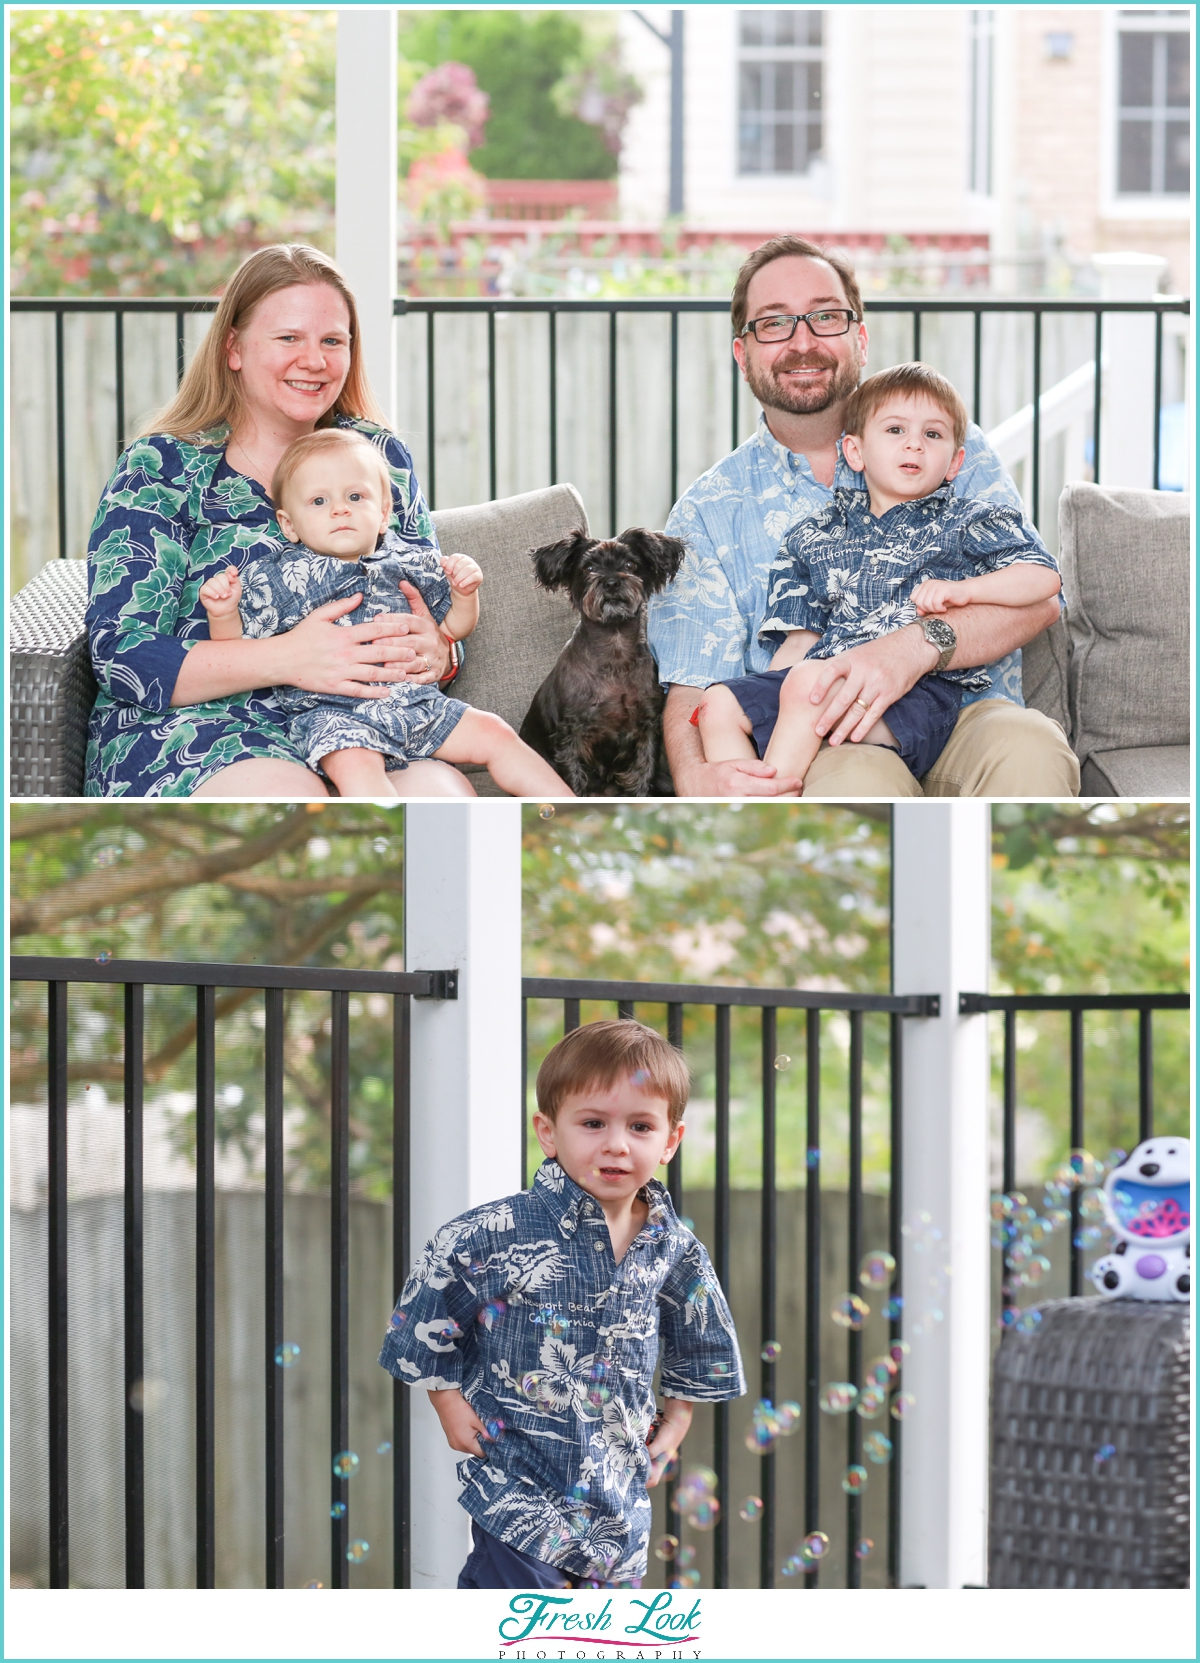 Family photos at home during Covid 19